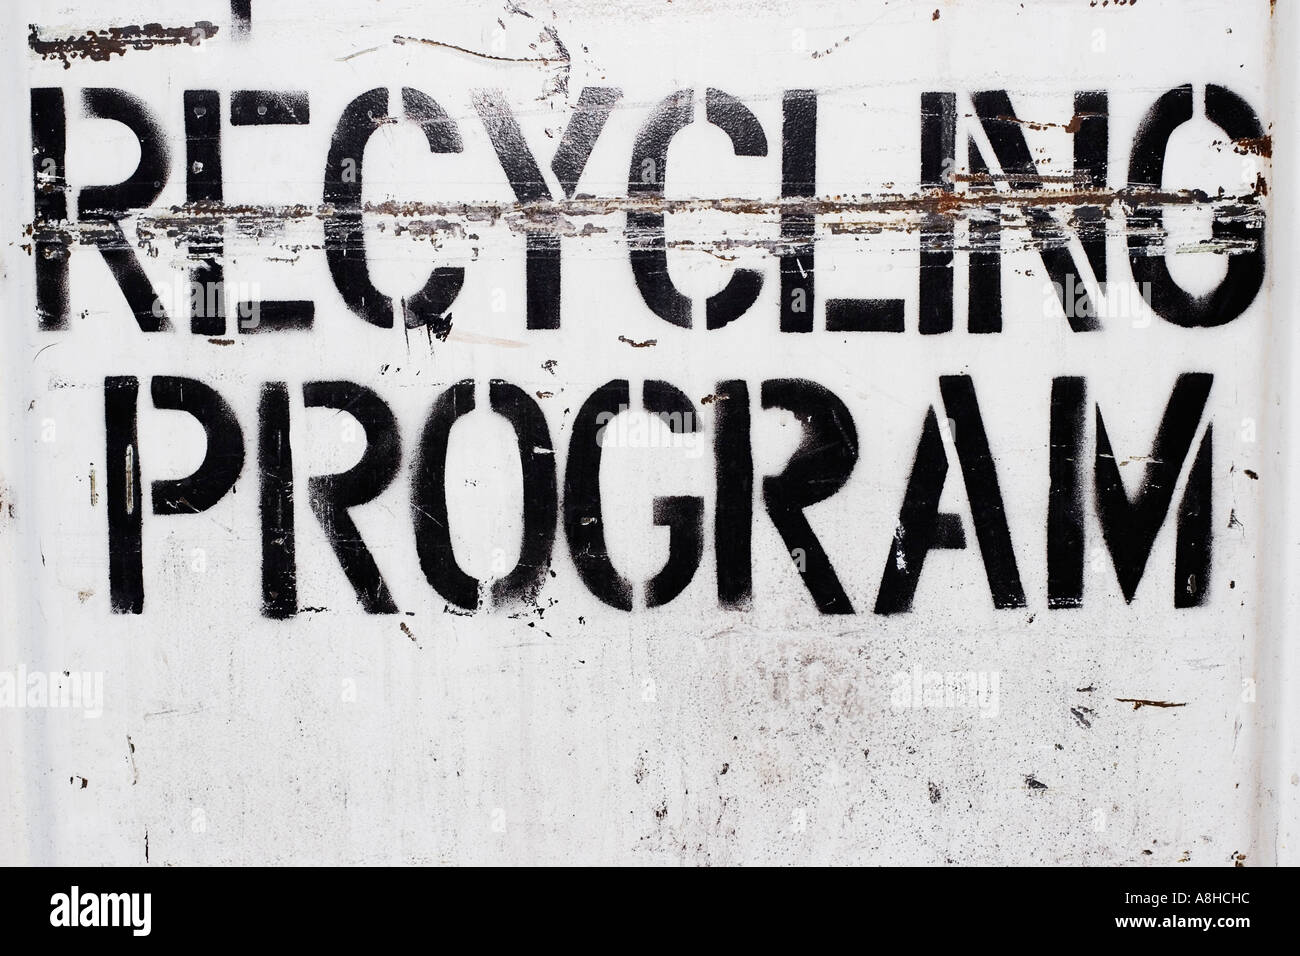 American Type Recycling Program - Stock Image